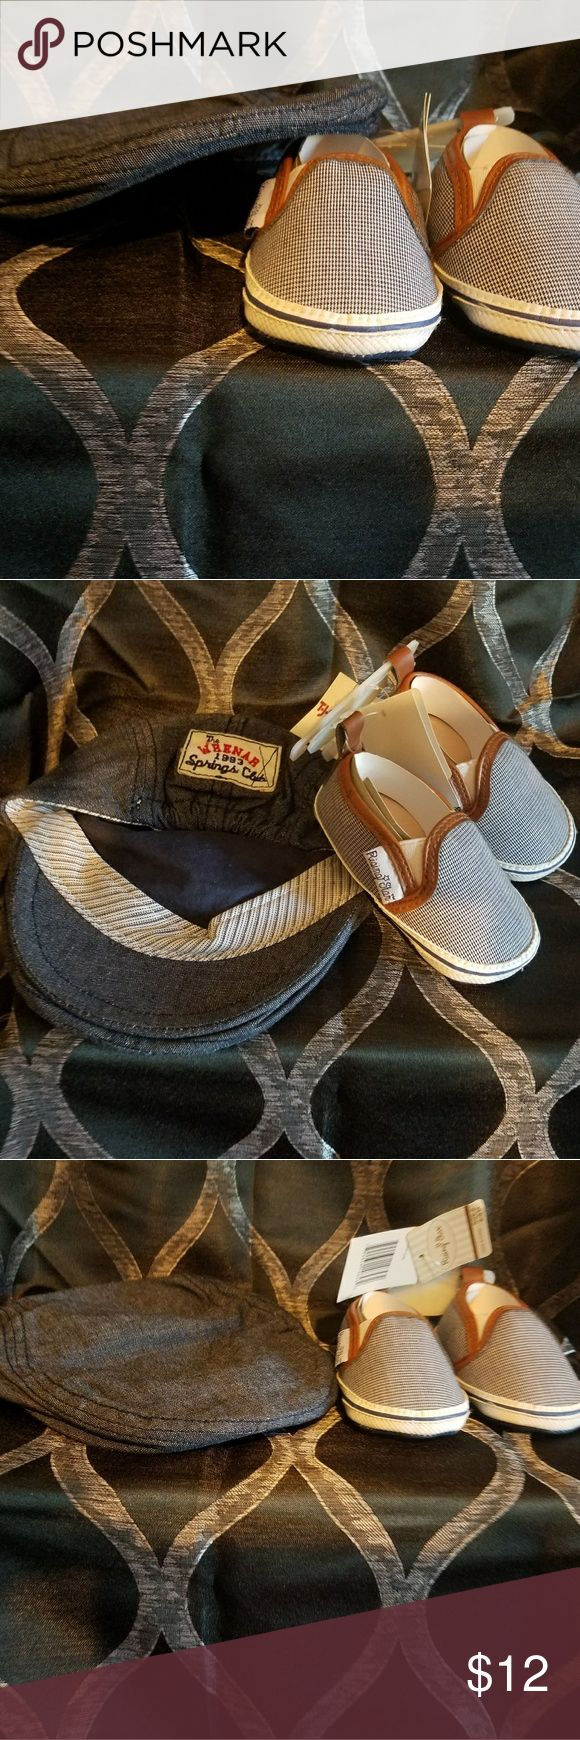 🆕 Baby Denim H&M Hat & Crib Shoes sz 6-9 mths Brand New Baby Blue Denim Flat Cap & Rising Star Brand Slip On Gingham Style Crib Shoes H&M Shoes Baby & Walker